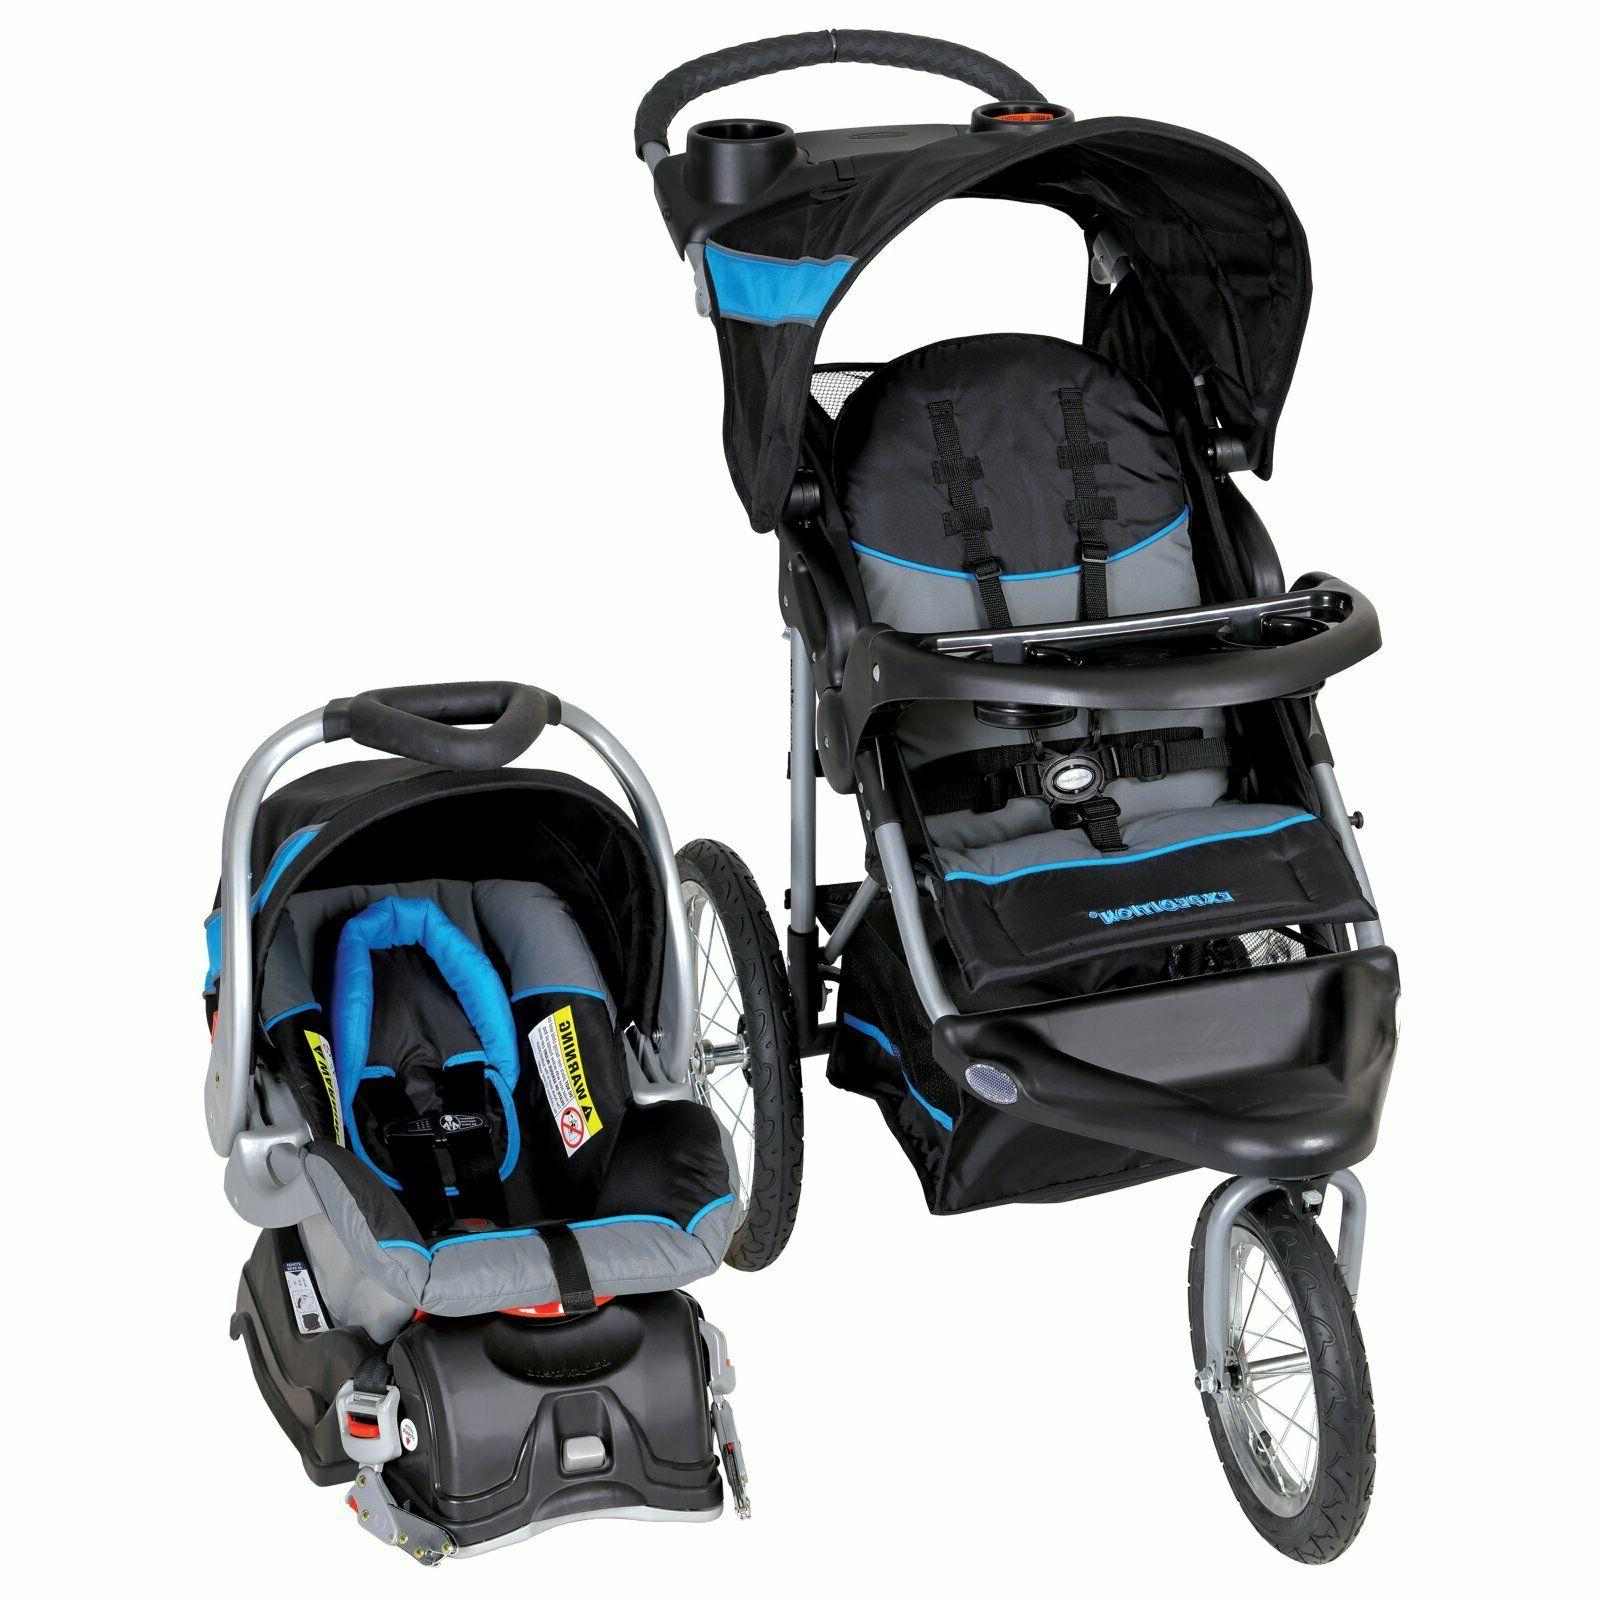 Baby Jogger Travel System Stroller Combo With Car Seat Boys